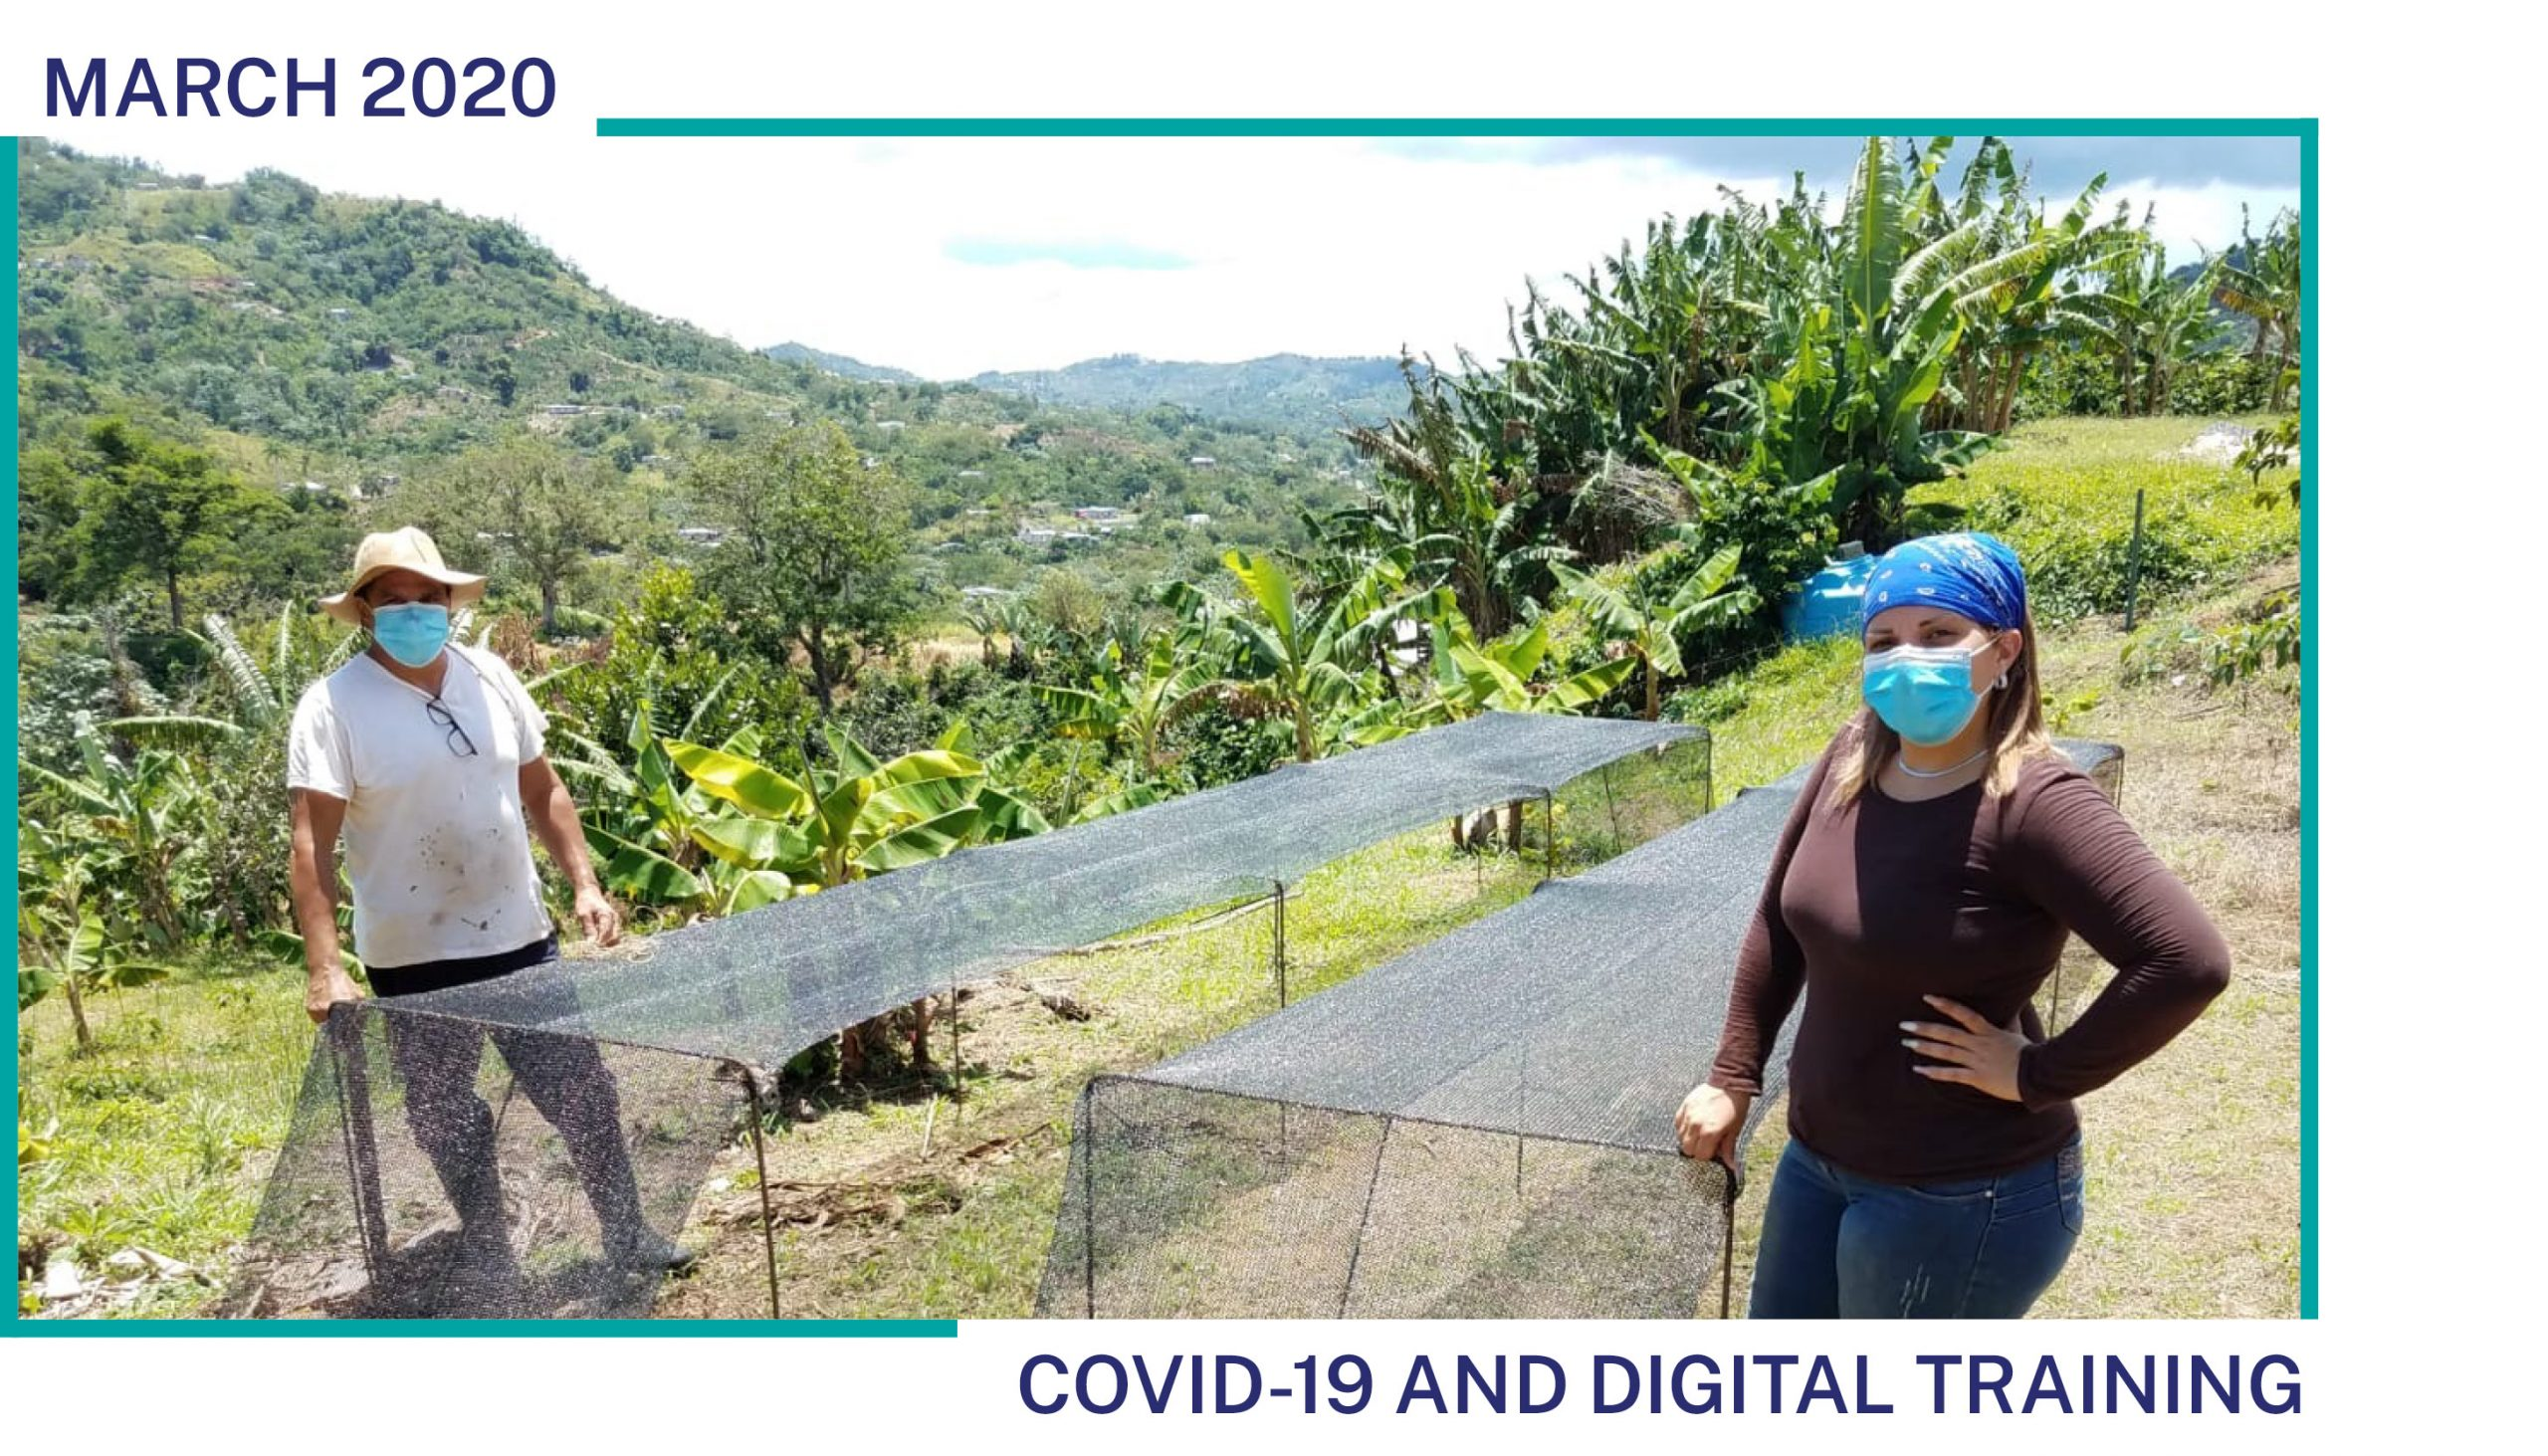 TechnoServe farmer trainer conducts a socially-distant farm visit